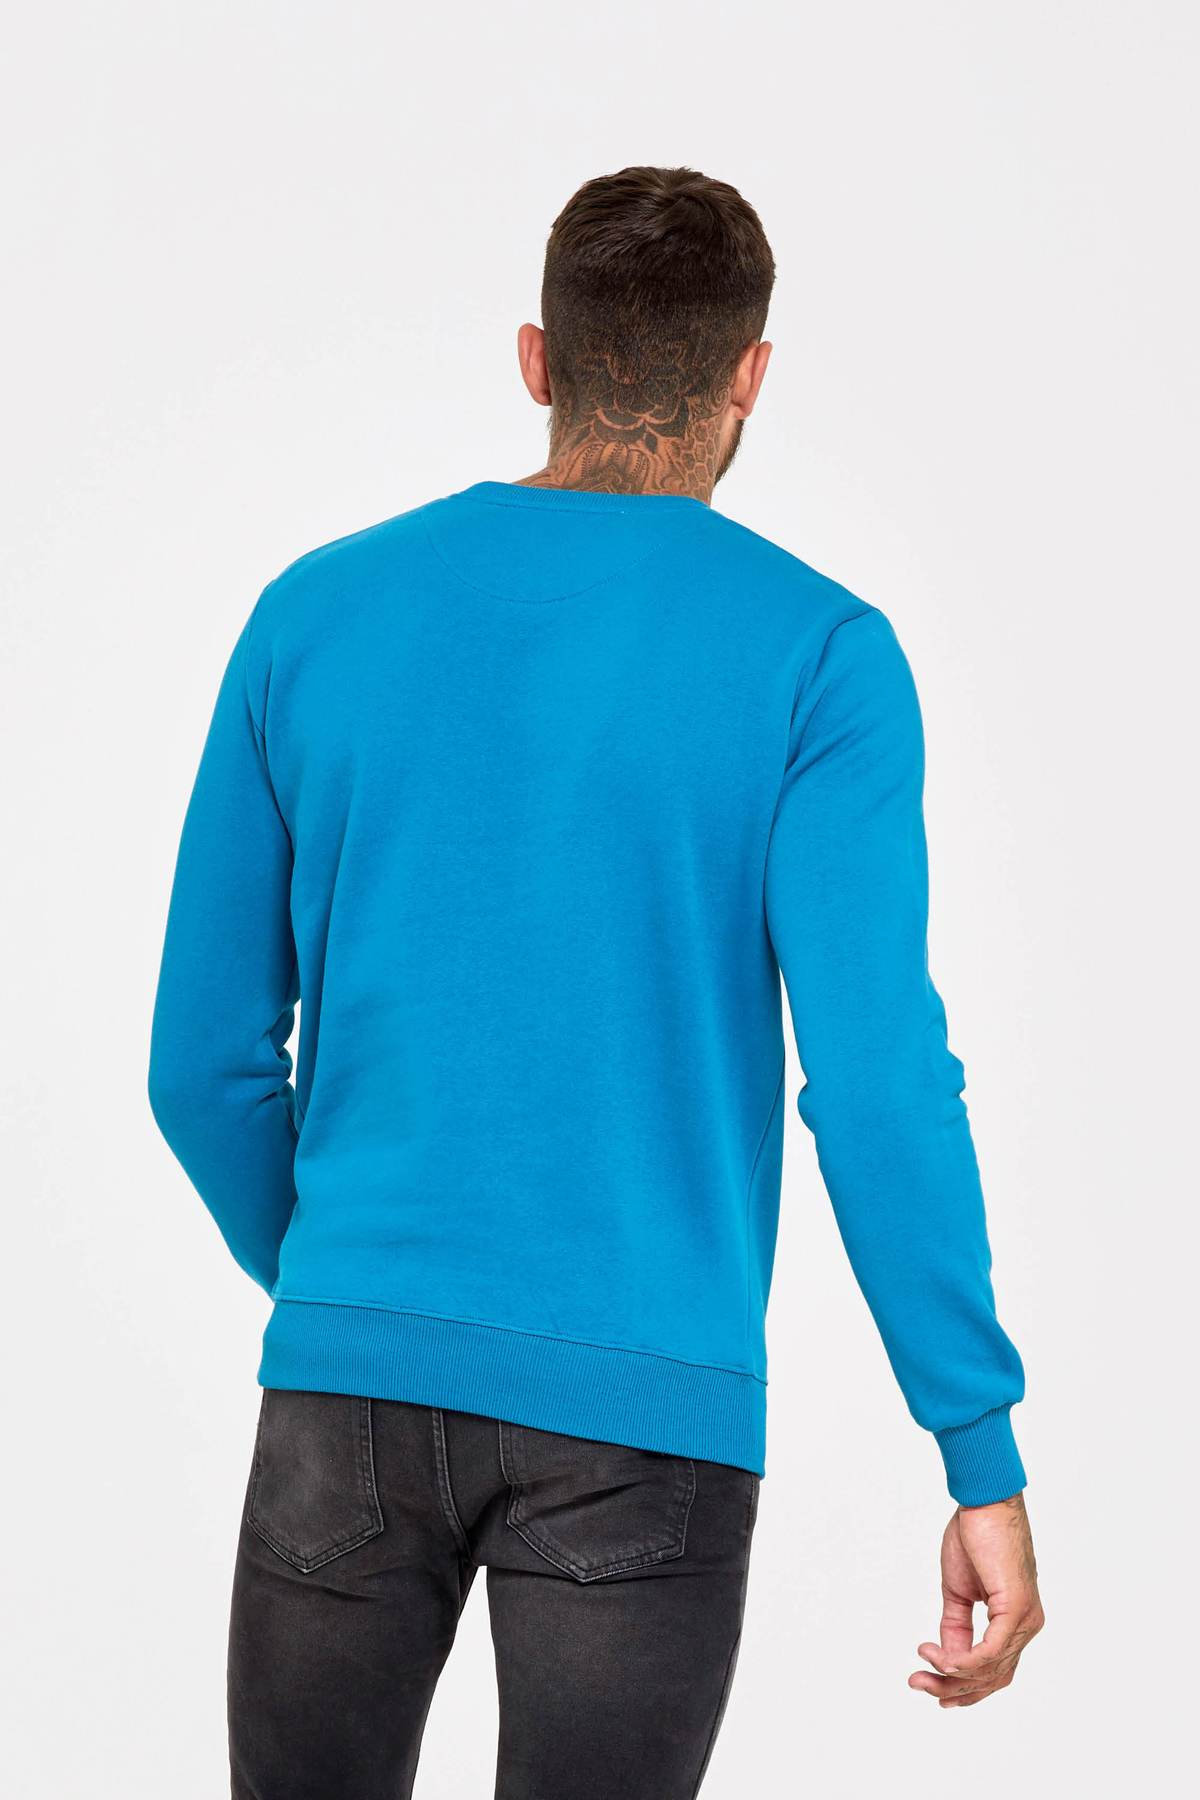 Archive Teal Sweatshirt